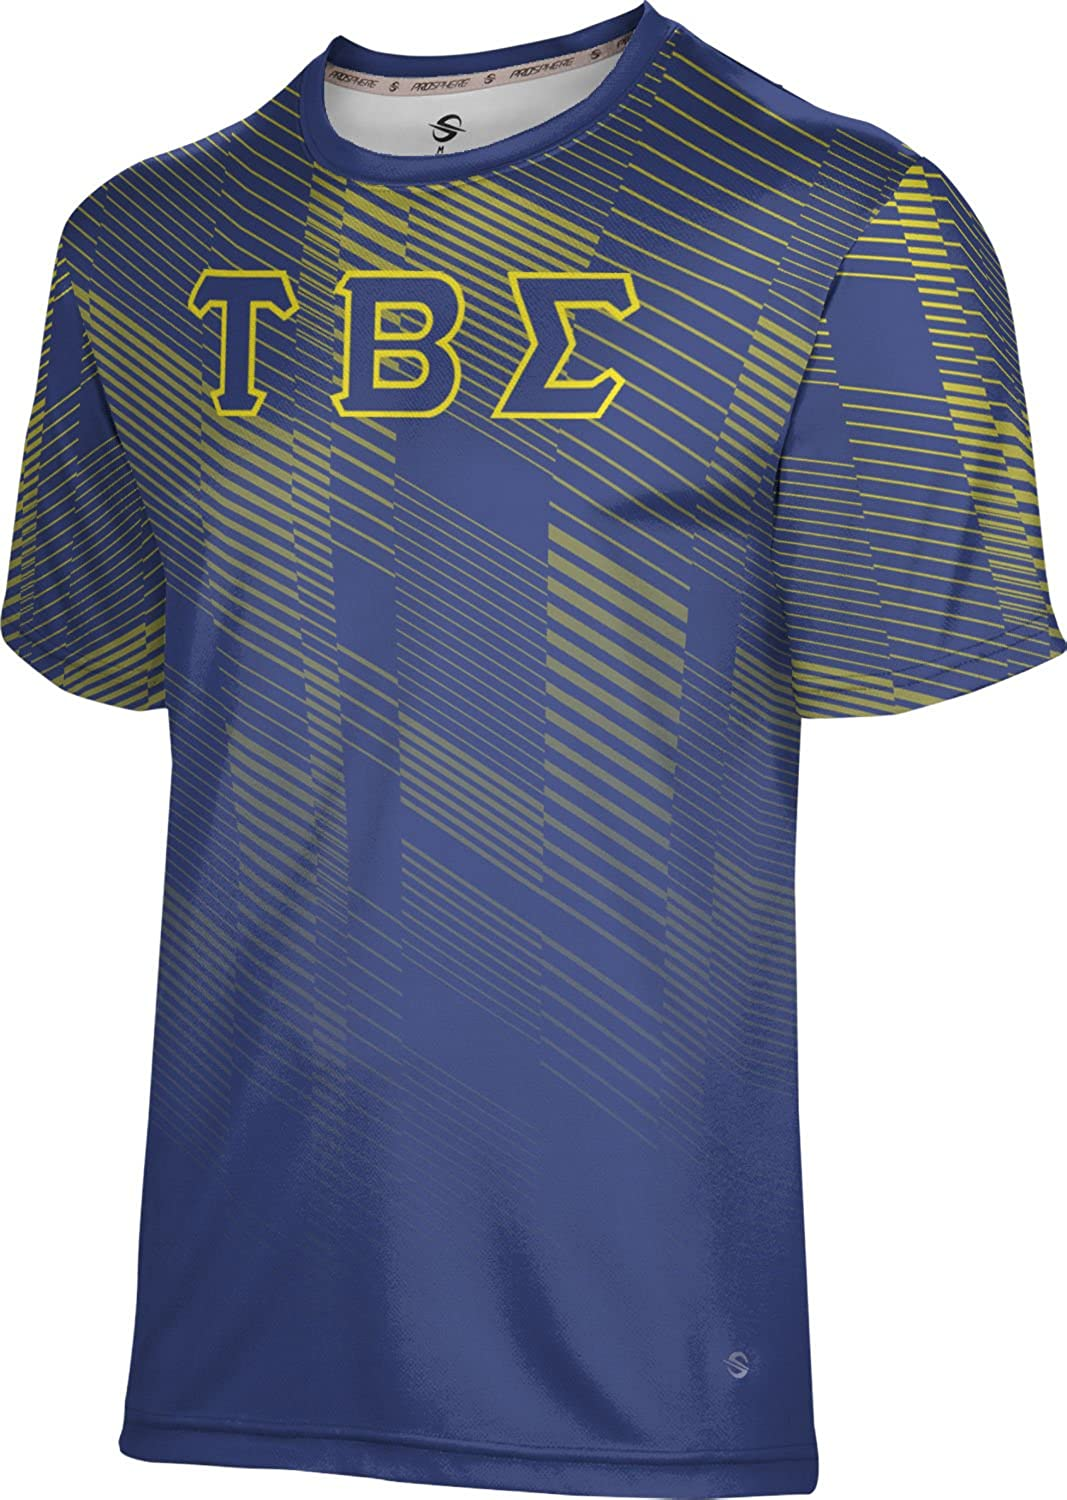 ProSphere National products Tau Beta Sigma Men's Performance Max 65% OFF CD2CDD T-Shirt Bold